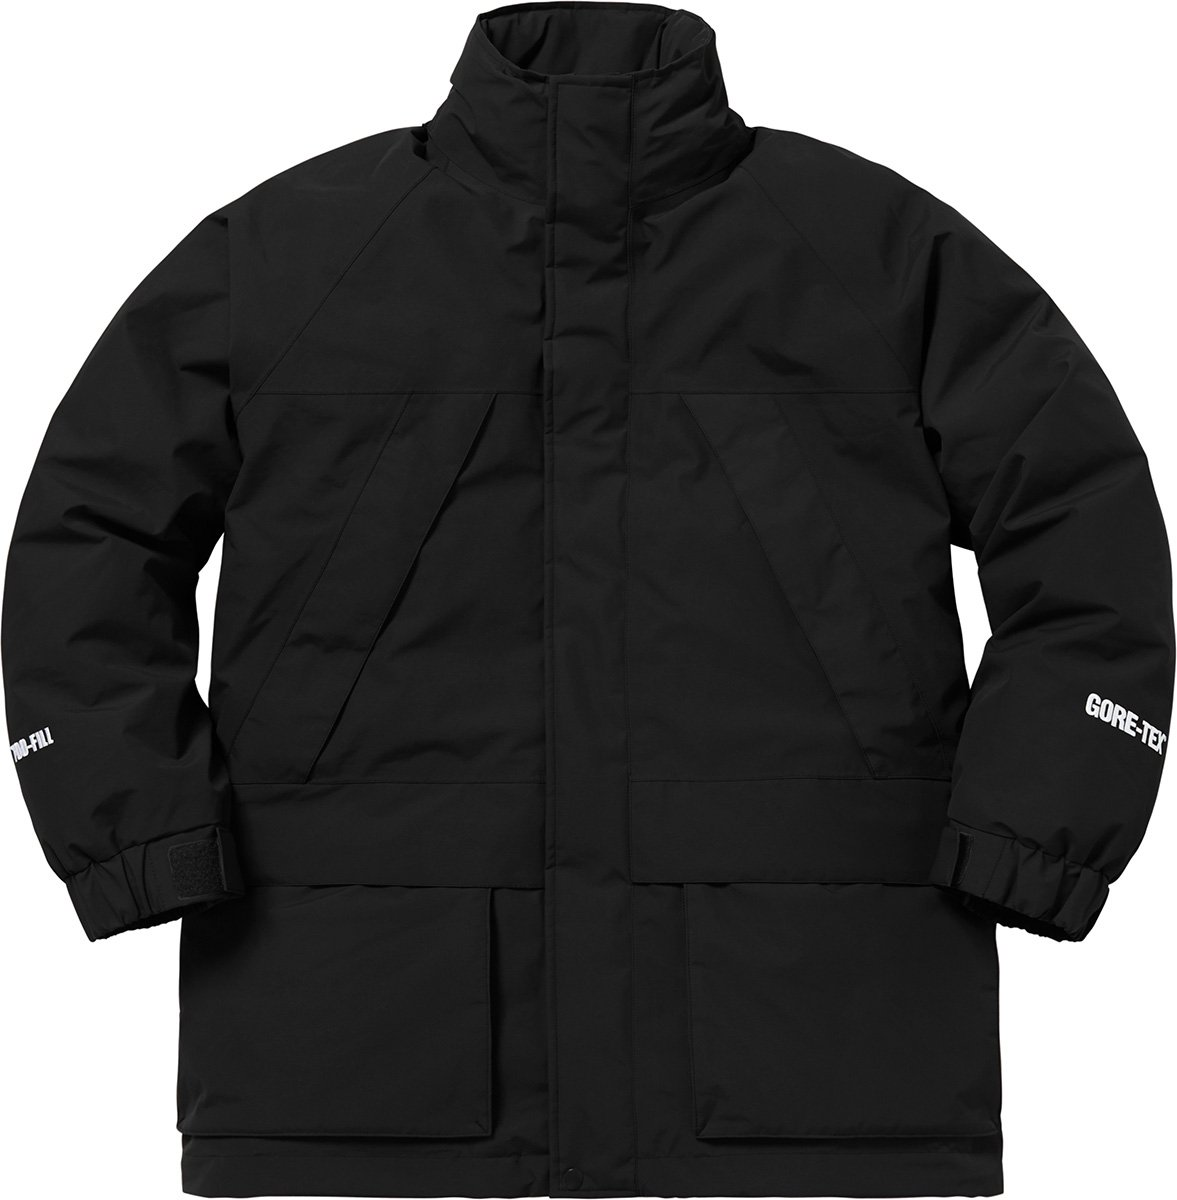 supreme-18aw-fall-winter-gore-tex-700-fill-down-parka